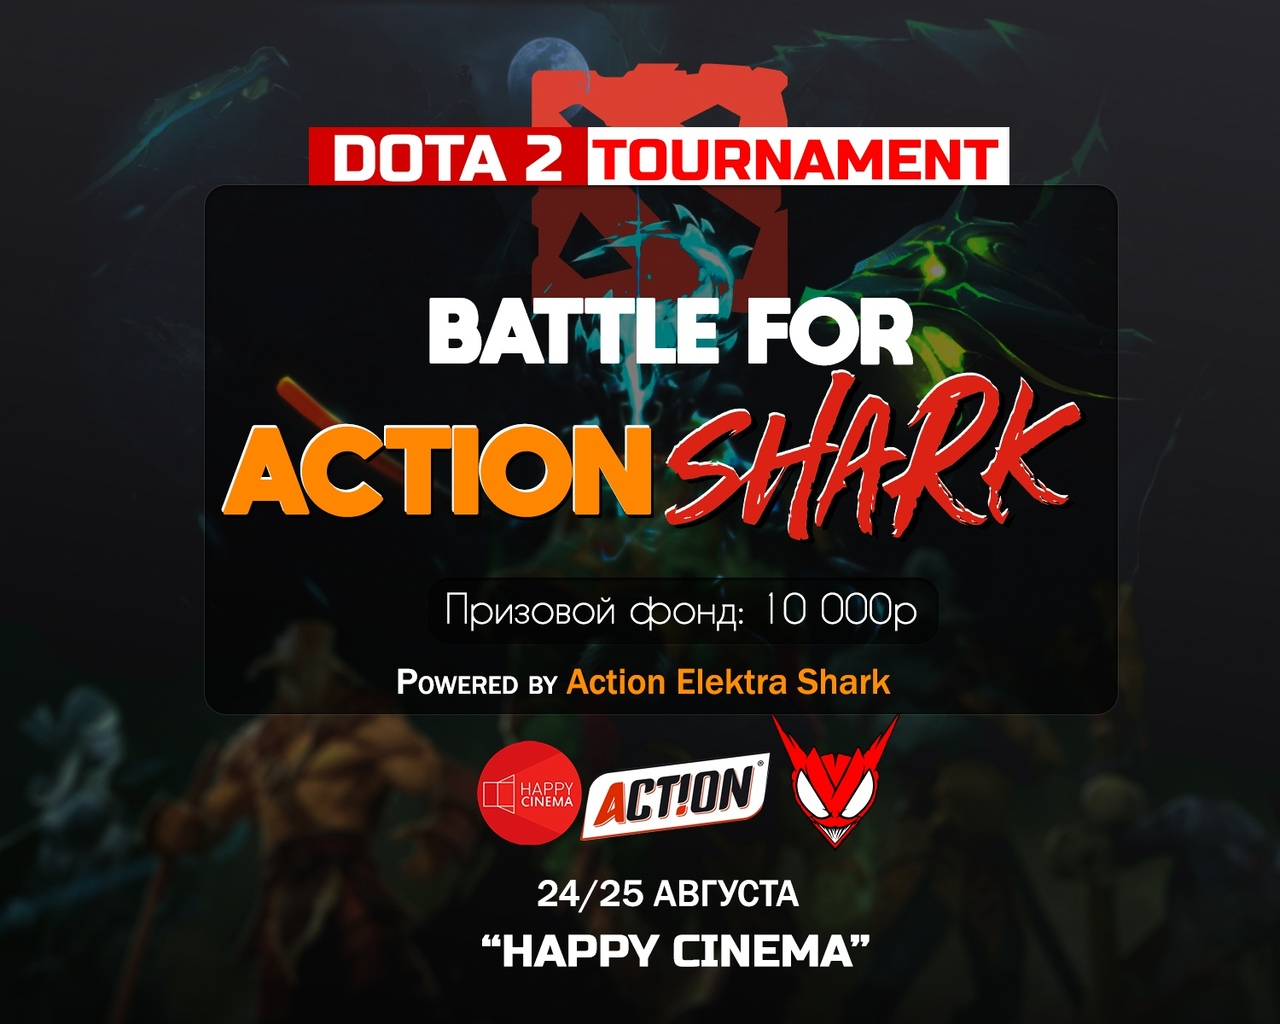 Афиша Dota 2 Tournament battle for Action Shark